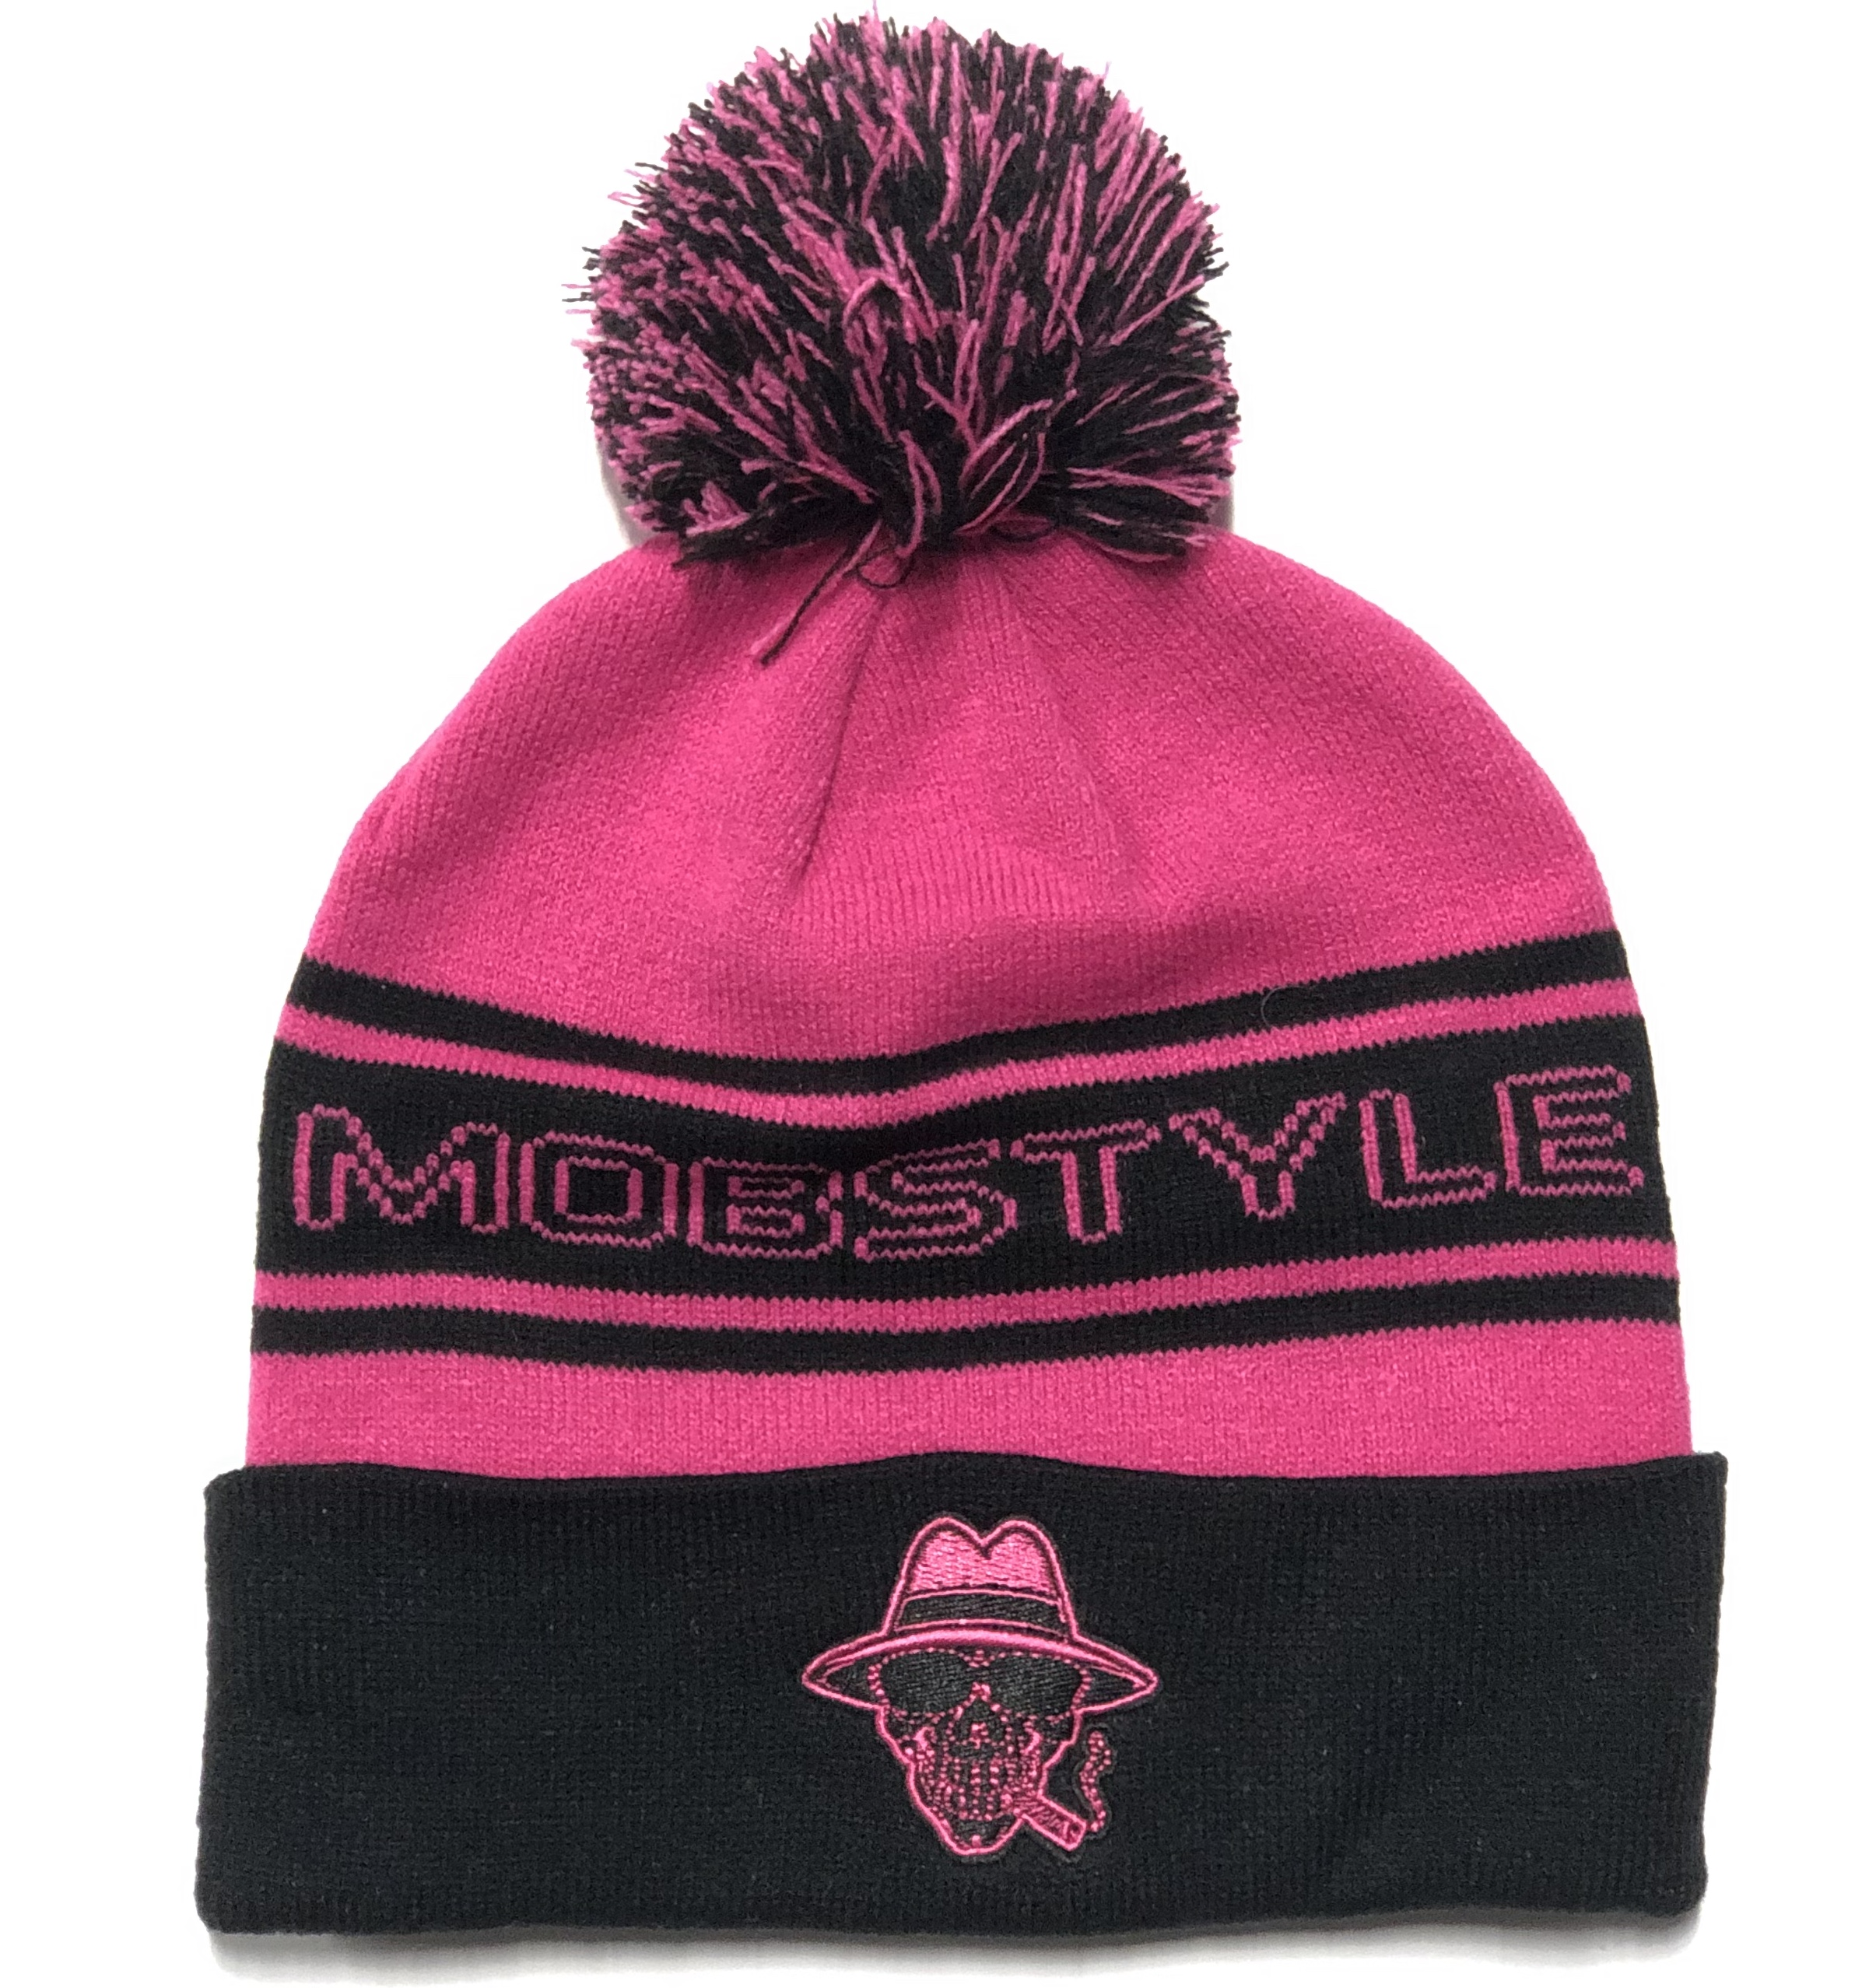 Mobstyle Knitted Puff Ball Hat (HOT PINK)